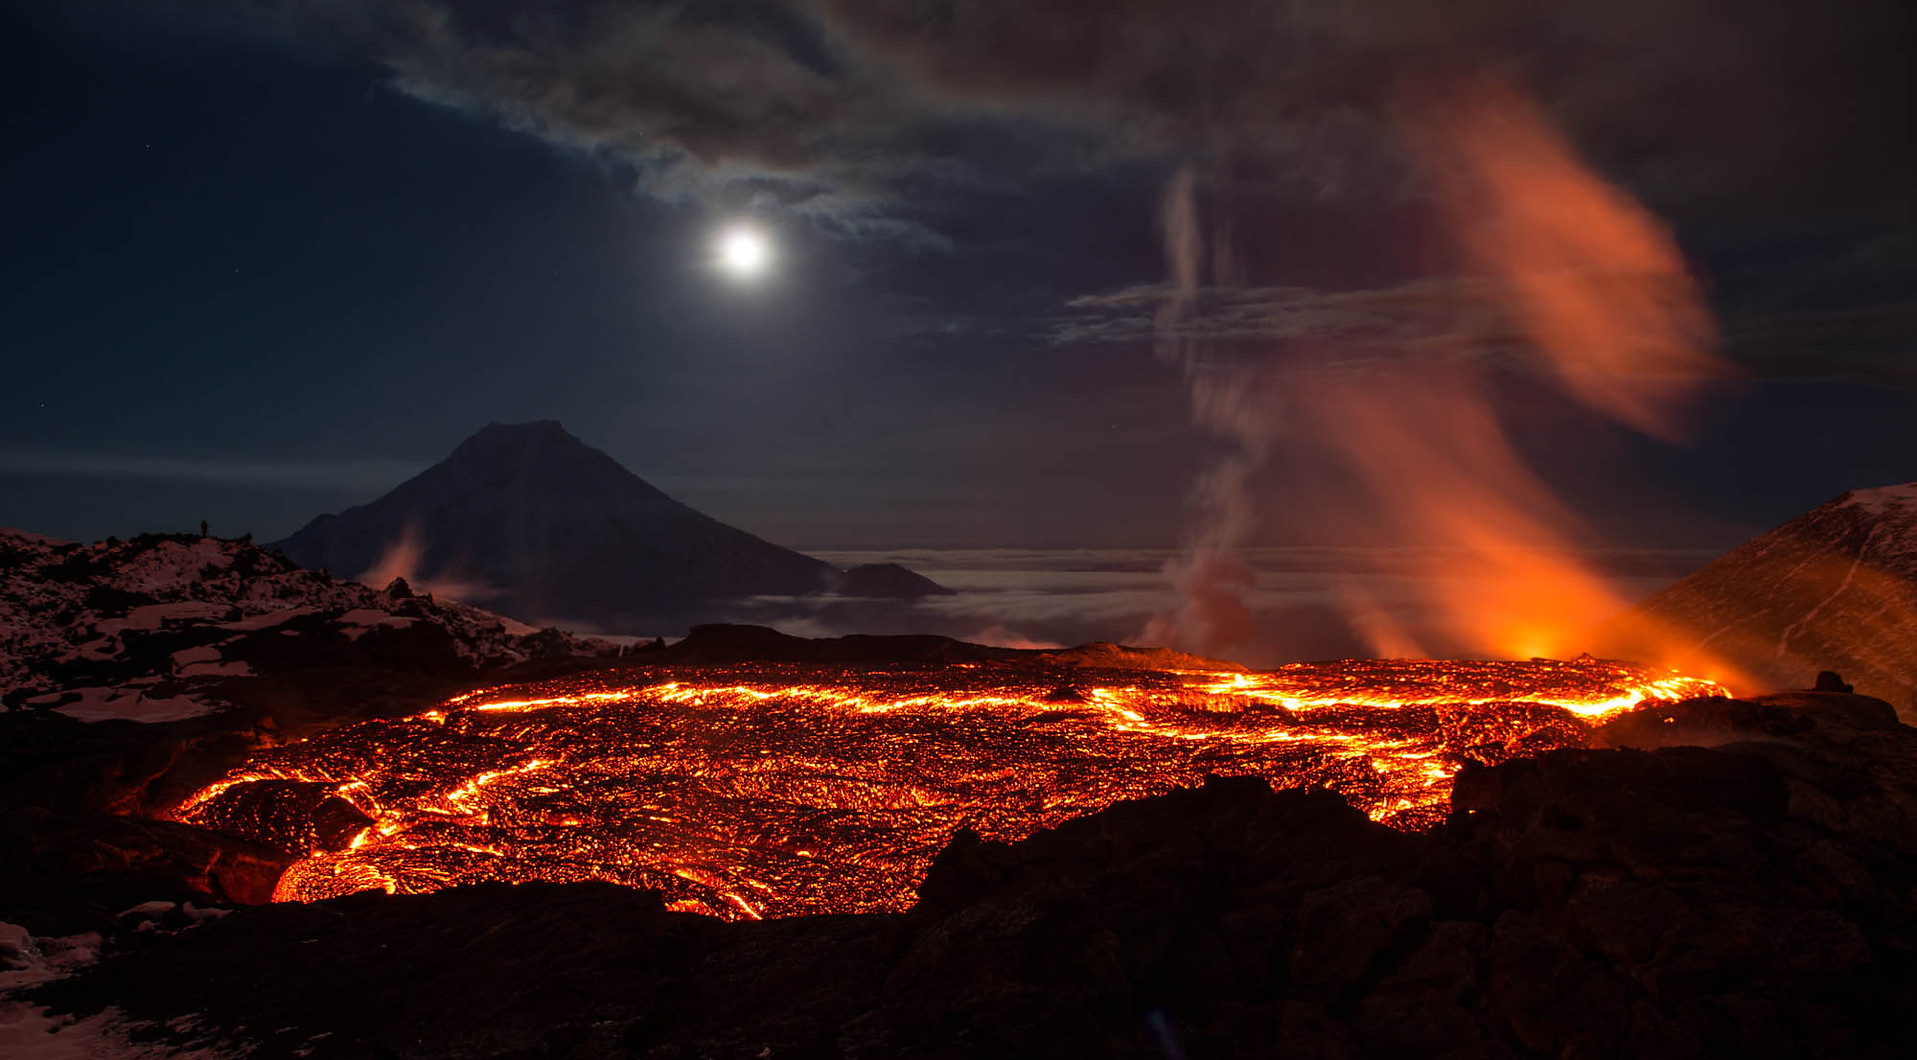 volcanoes-wallpapers-28095-1935725.jpg